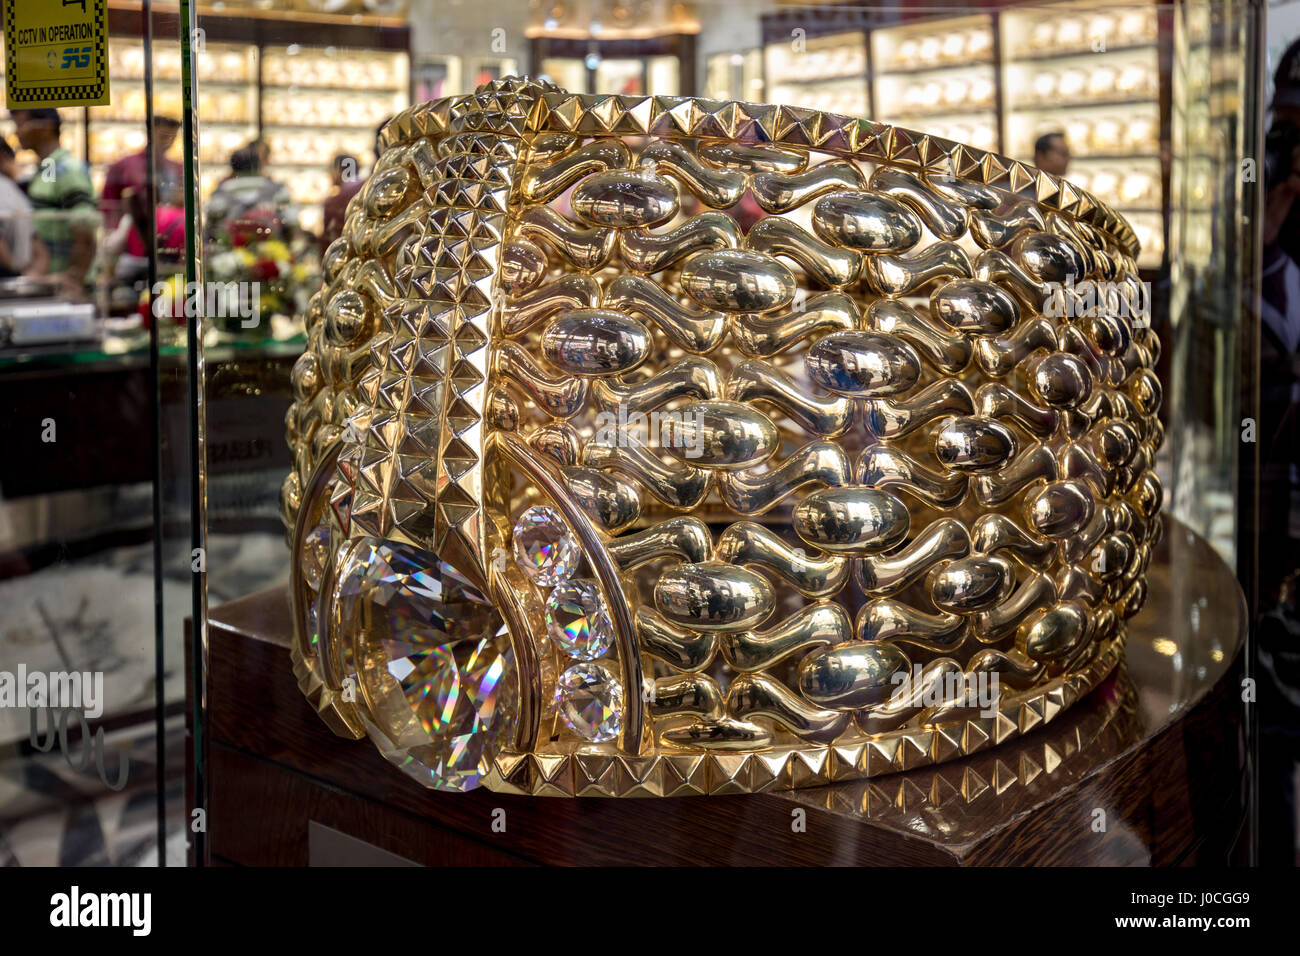 The Najmat Taiba or Star of Taiba, The world's largest gold ring. - Stock Image